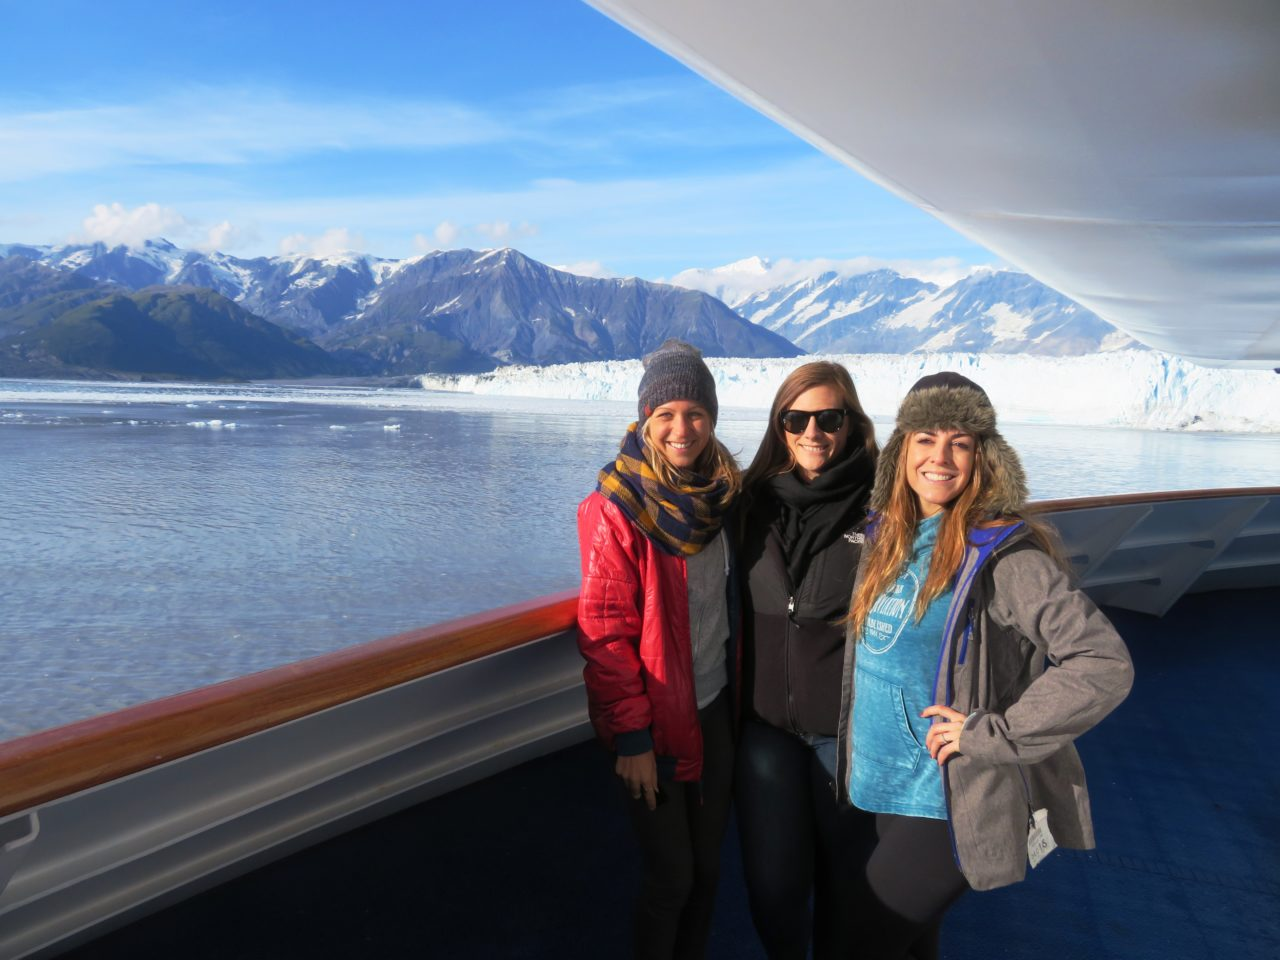 Three of our fellow travelers during our Alaska Cruise with Princess Cruises